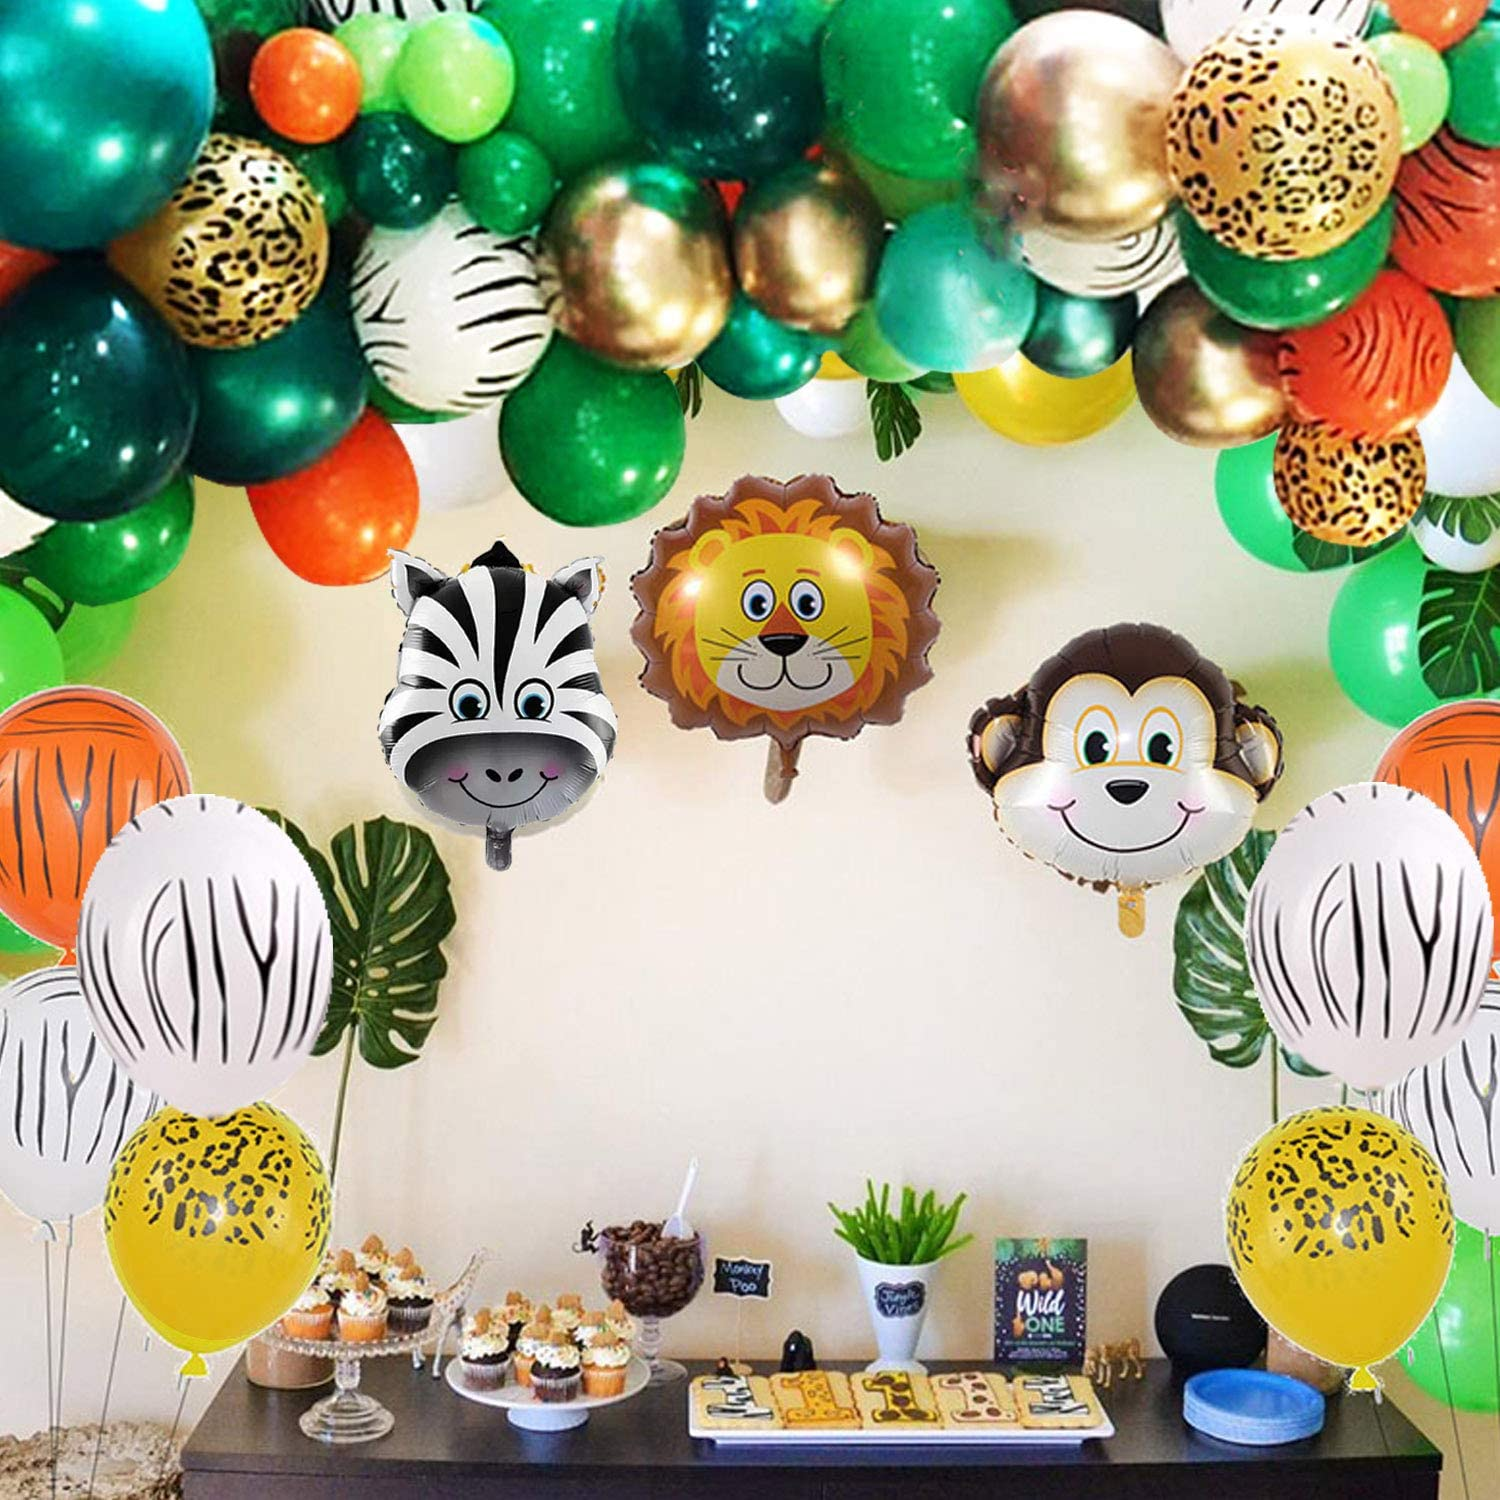 Animal Balloons Garland Kit Jungle Safari Theme Party Supplies Favors Kids Boys Birthday Party Baby Shower Decorations